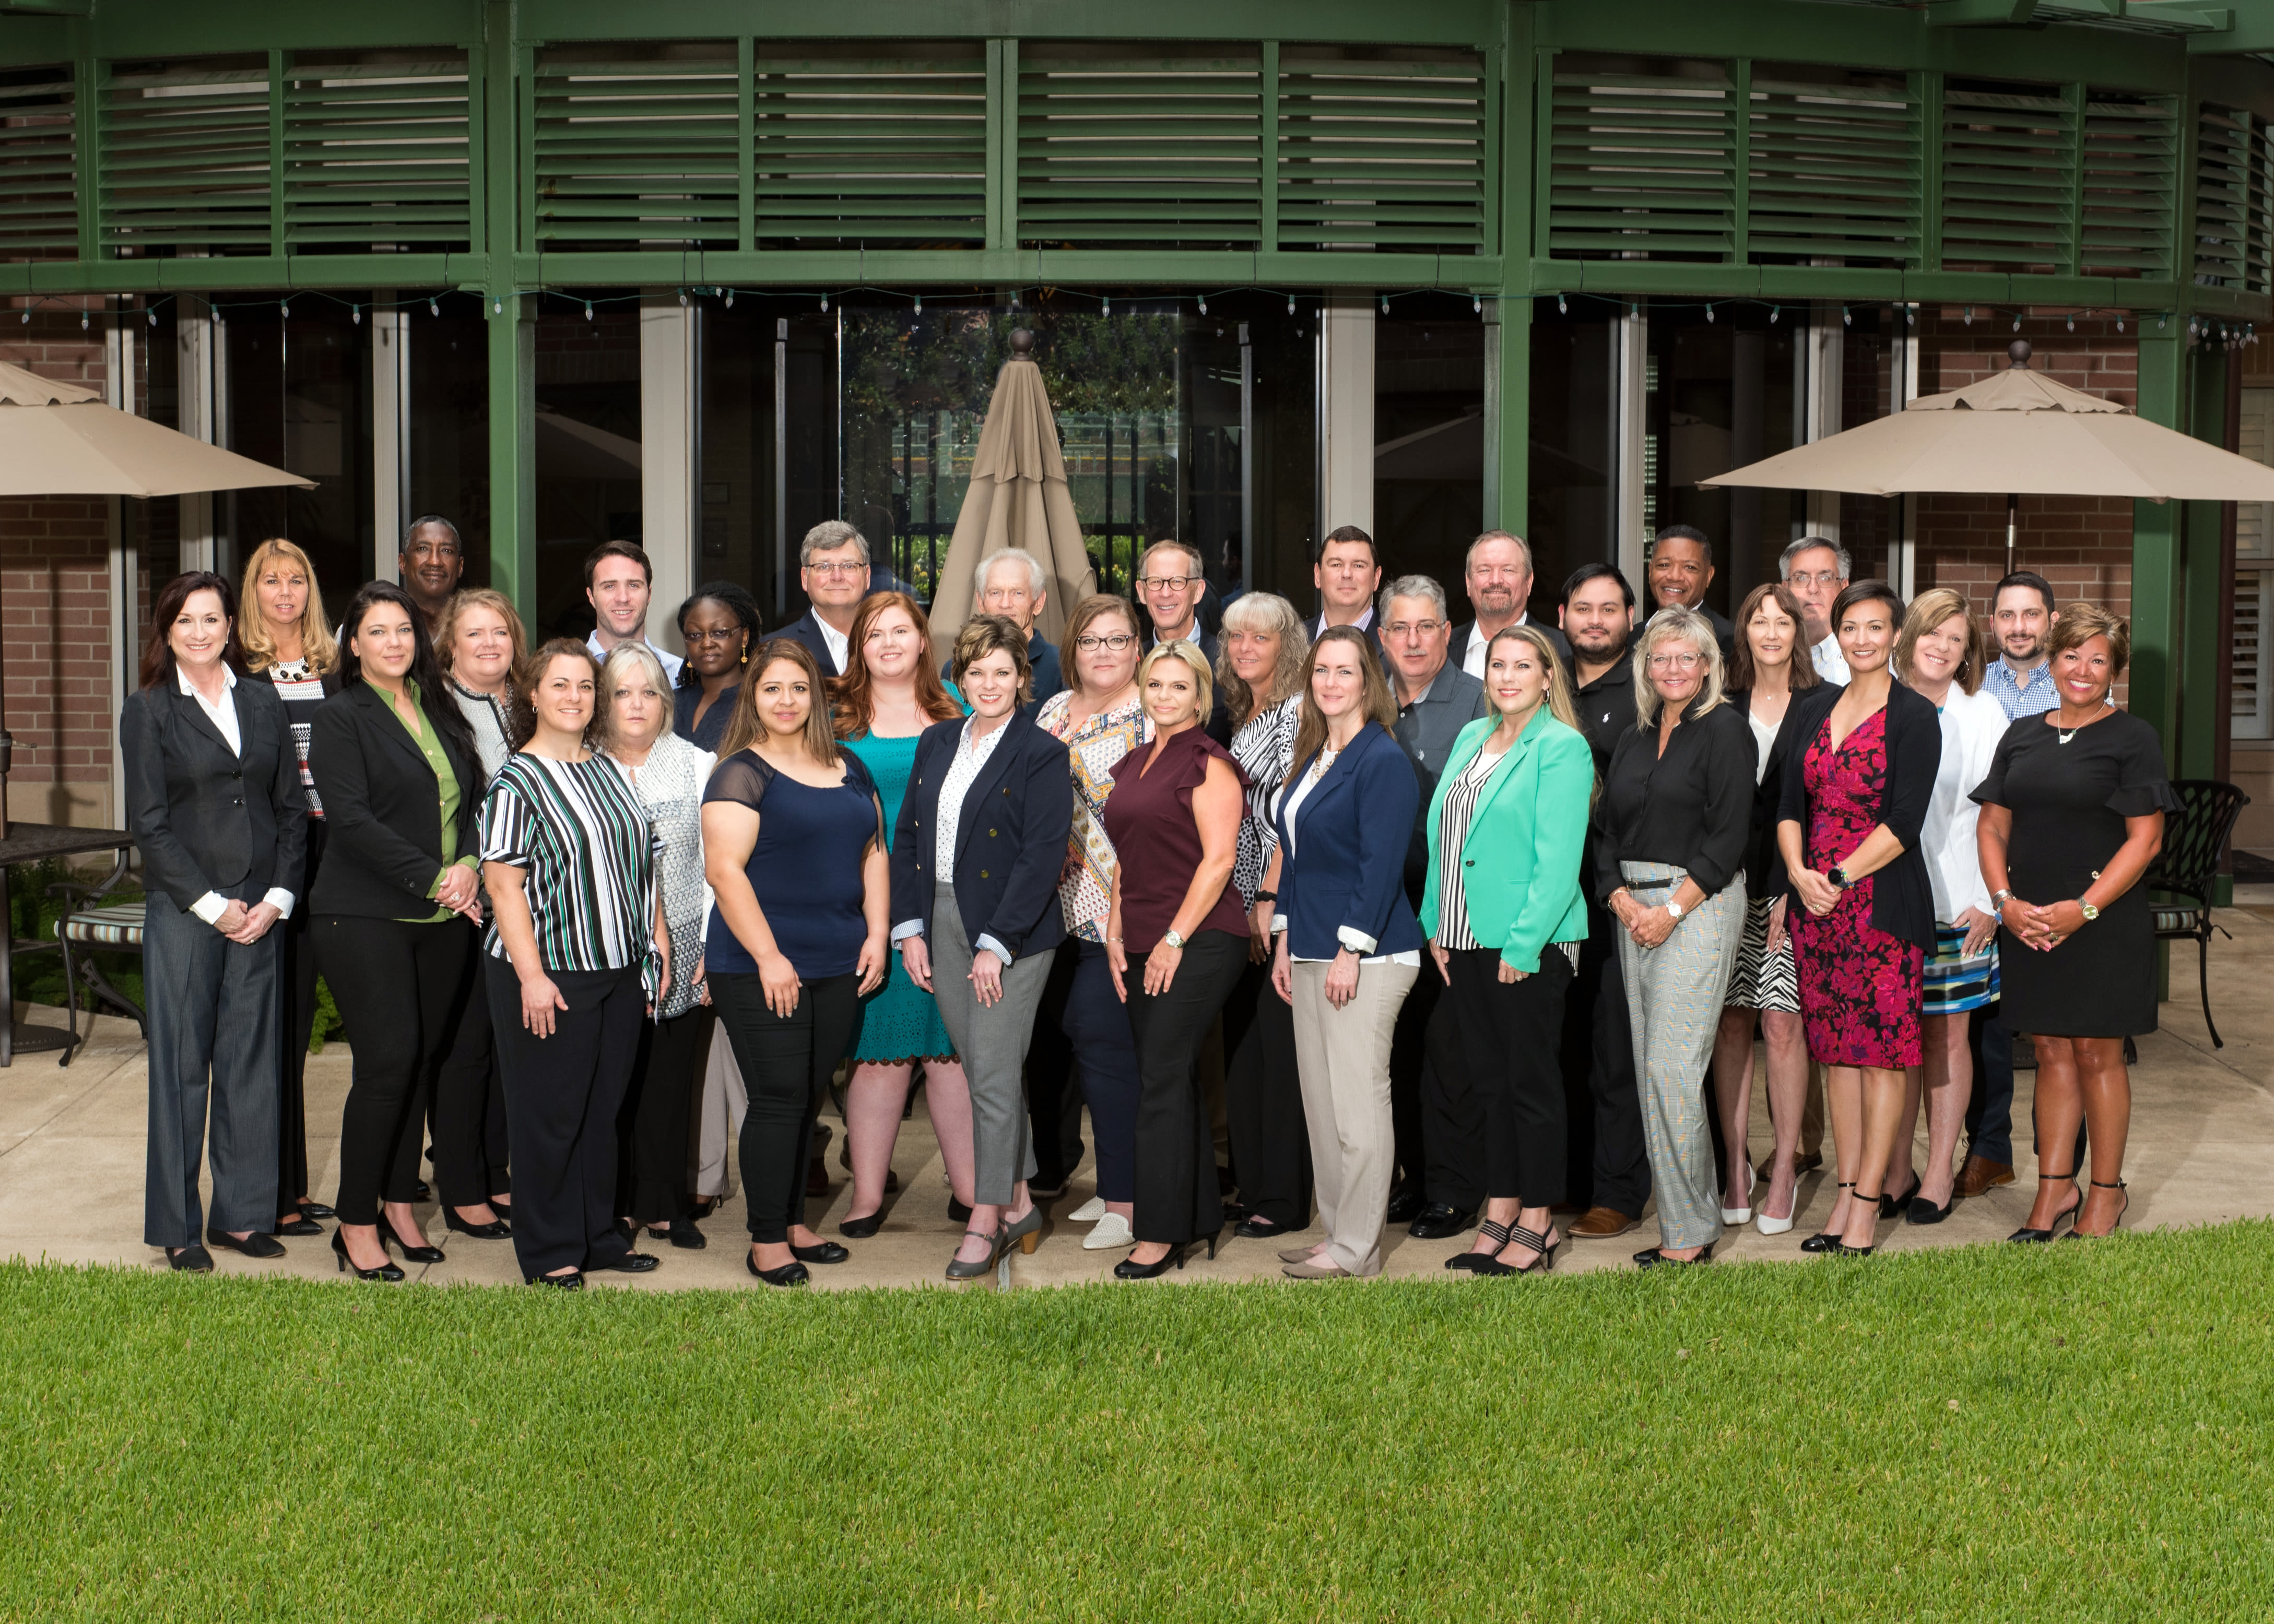 Professional and caring team at Stoney Brook of Copperas Cove in Copperas Cove, Texas